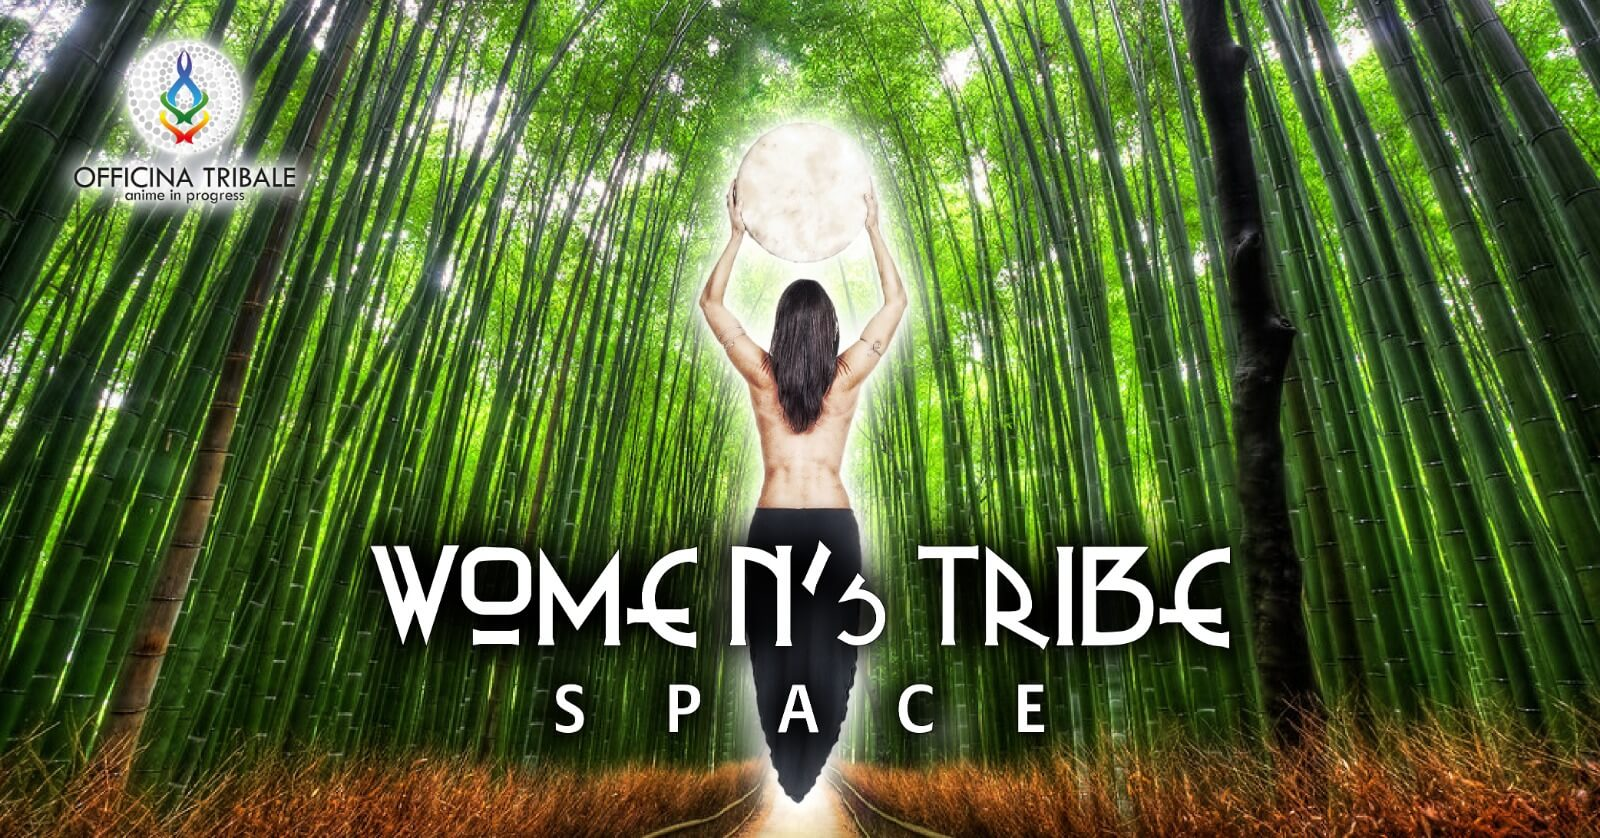 WOMEN'S TRIBE SPACE project